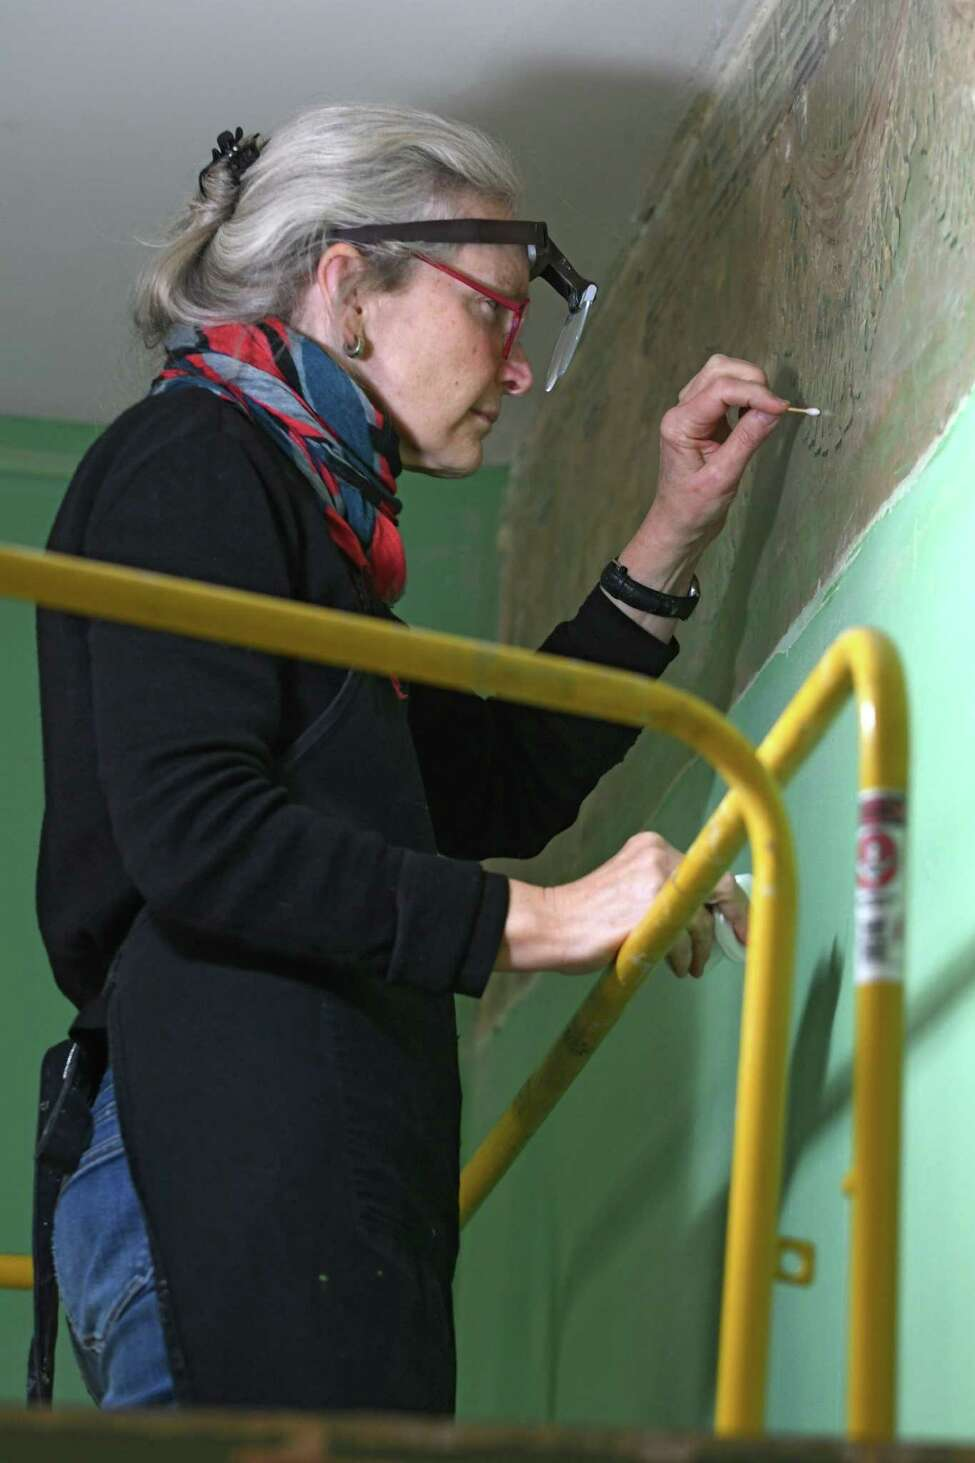 Conservator Margaret Saliske works on restoring the long lost paintings by Thomas Cole at the Thomas Cole Historic Site on Wednesday, Nov. 23, 2016 in Catskill, N.Y. Senator Charles Schumer recently secured over $600,000 to restore the lost American treasures. (Lori Van Buren / Times Union)